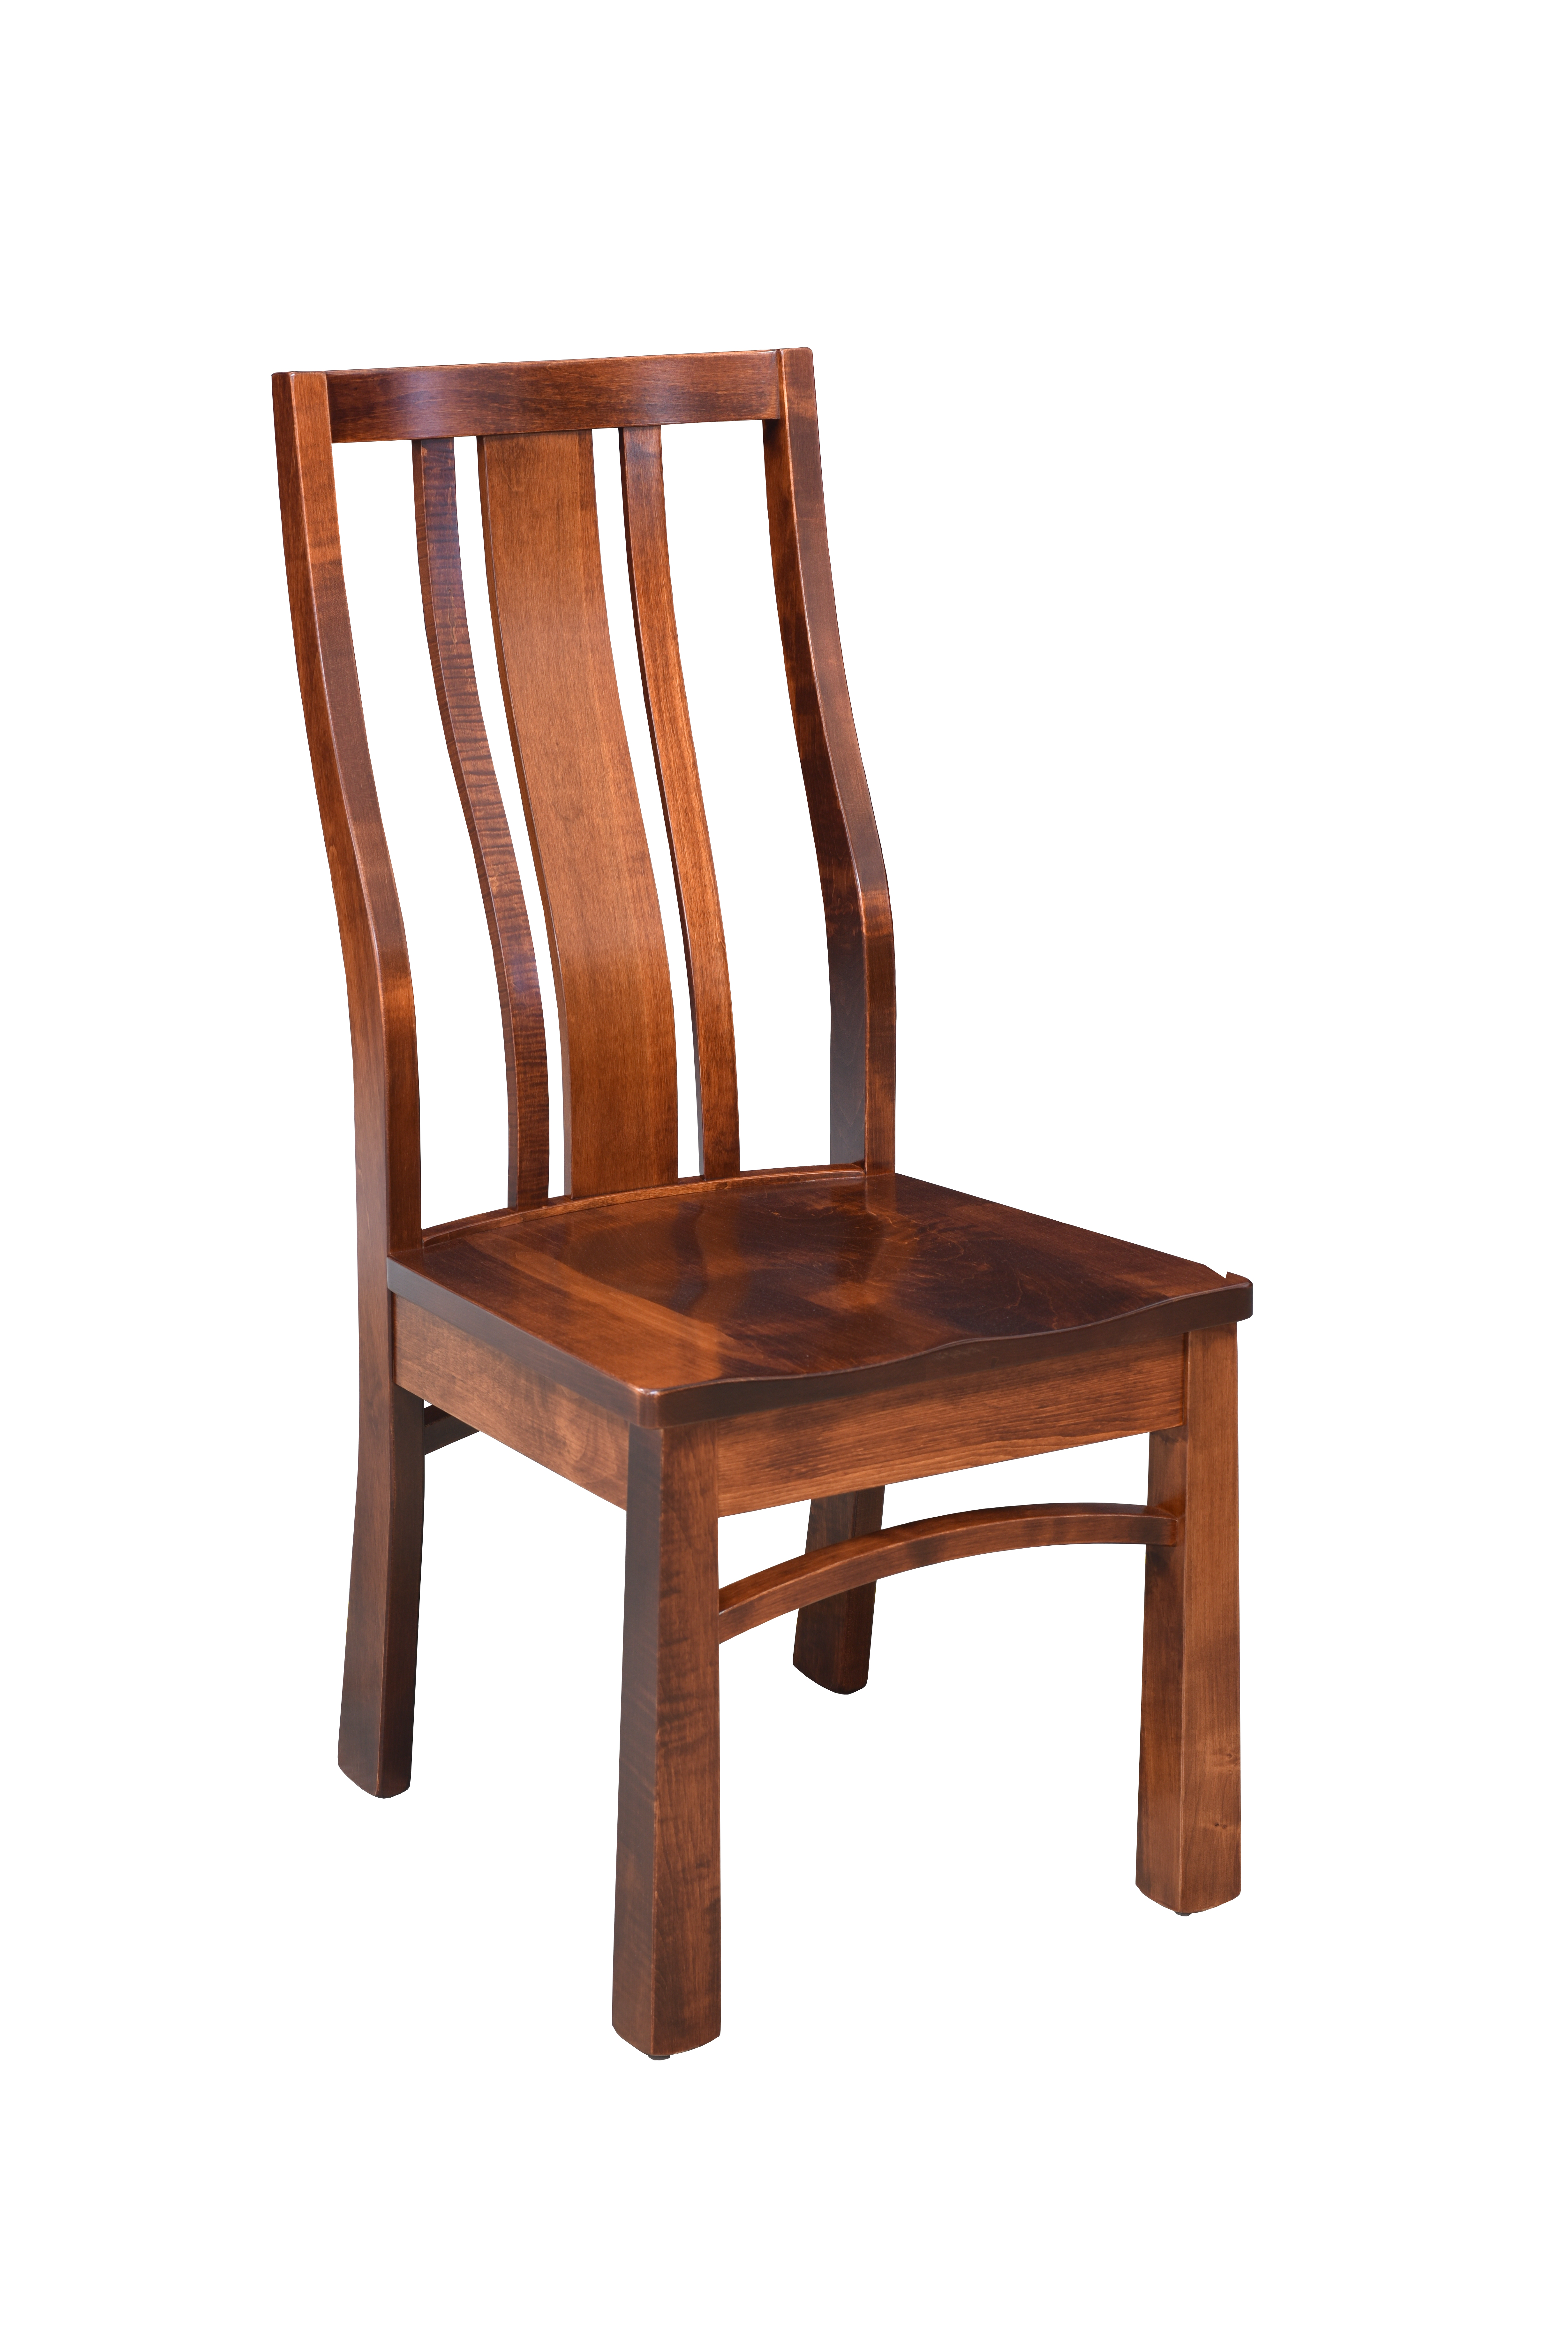 Groovy Stanton Chair Amish Oak Warehouse Download Free Architecture Designs Sospemadebymaigaardcom